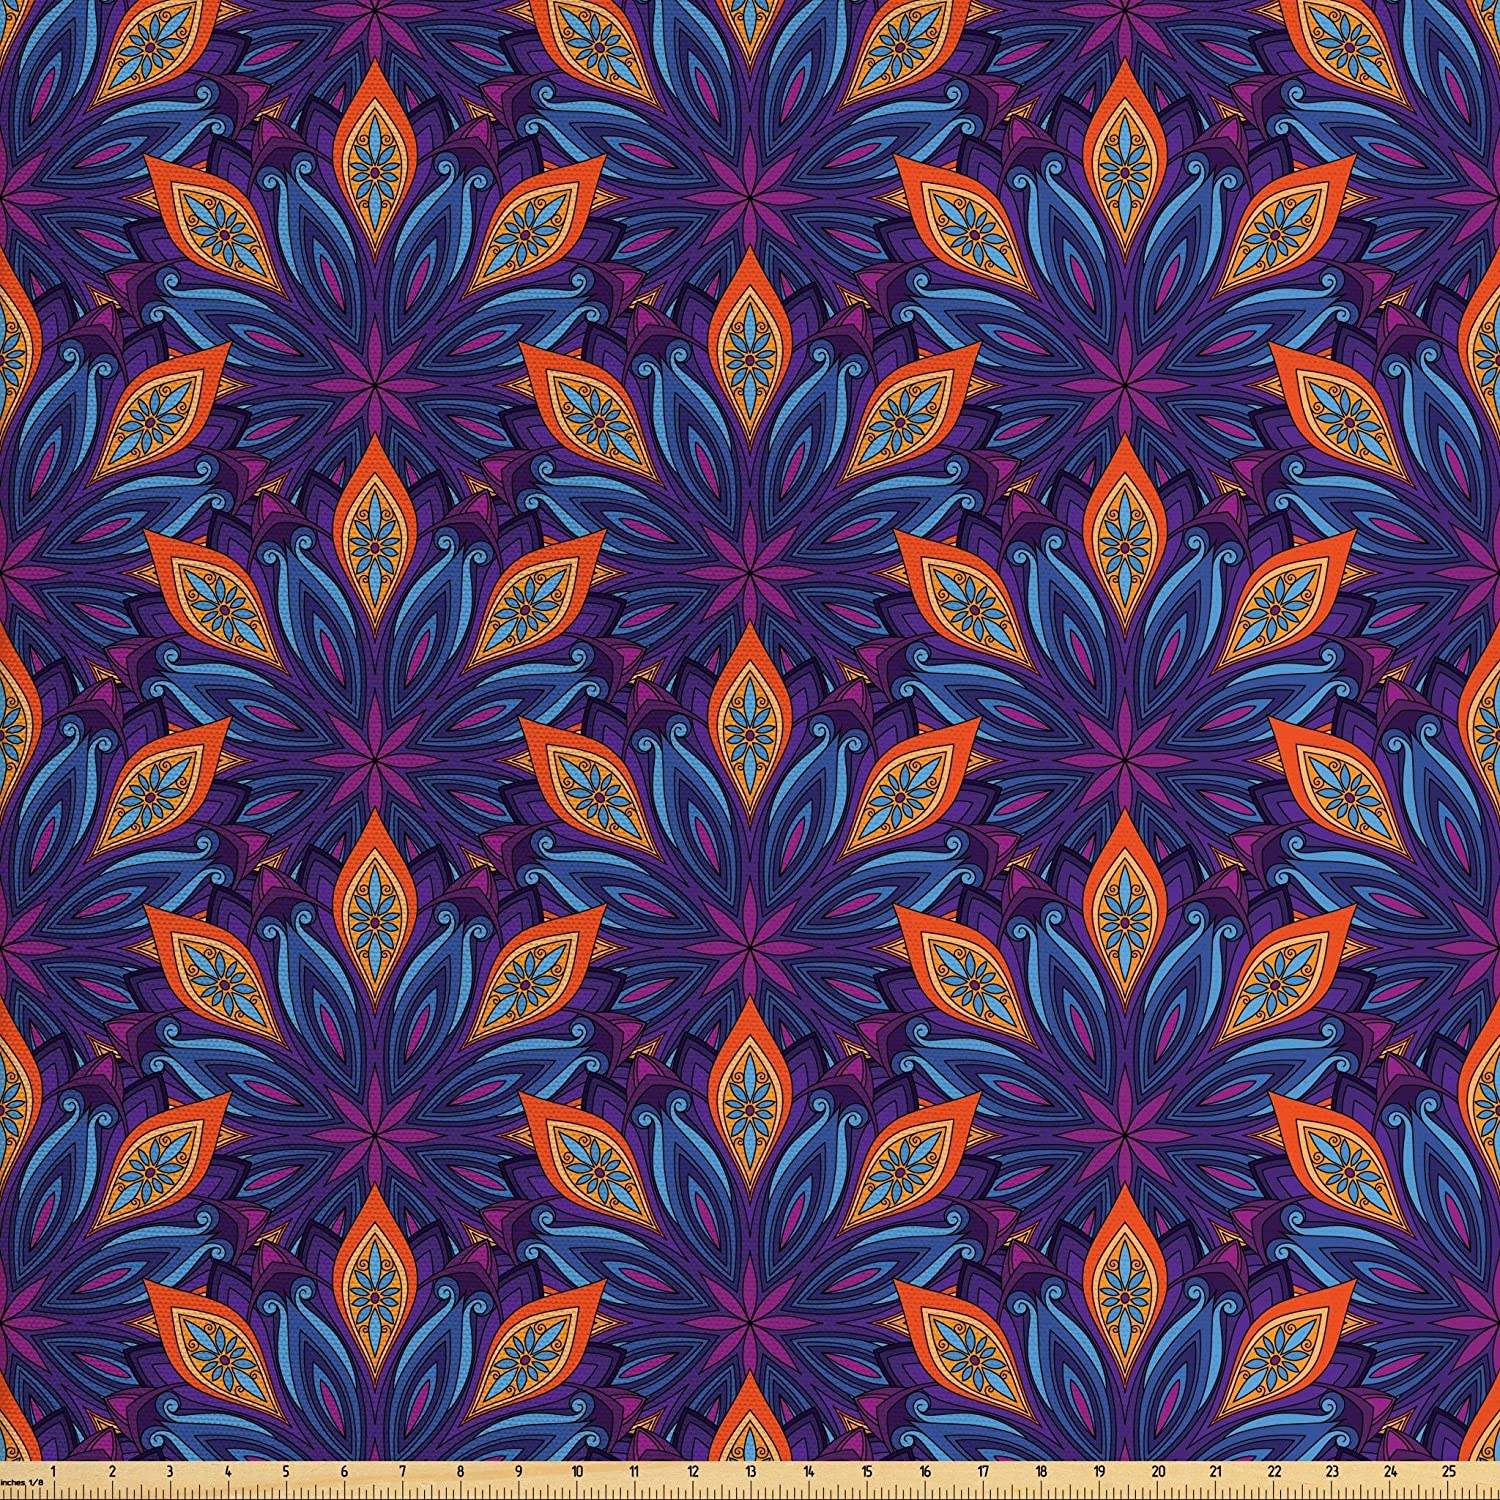 Ambesonne Mandala Fabric by The Yard, Vibrant Colored Floral Pattern Eastern Style Vintage Art Desin Print, Decorative Fabric for Upholstery and Home Accents, Orange Pale Blue Purple